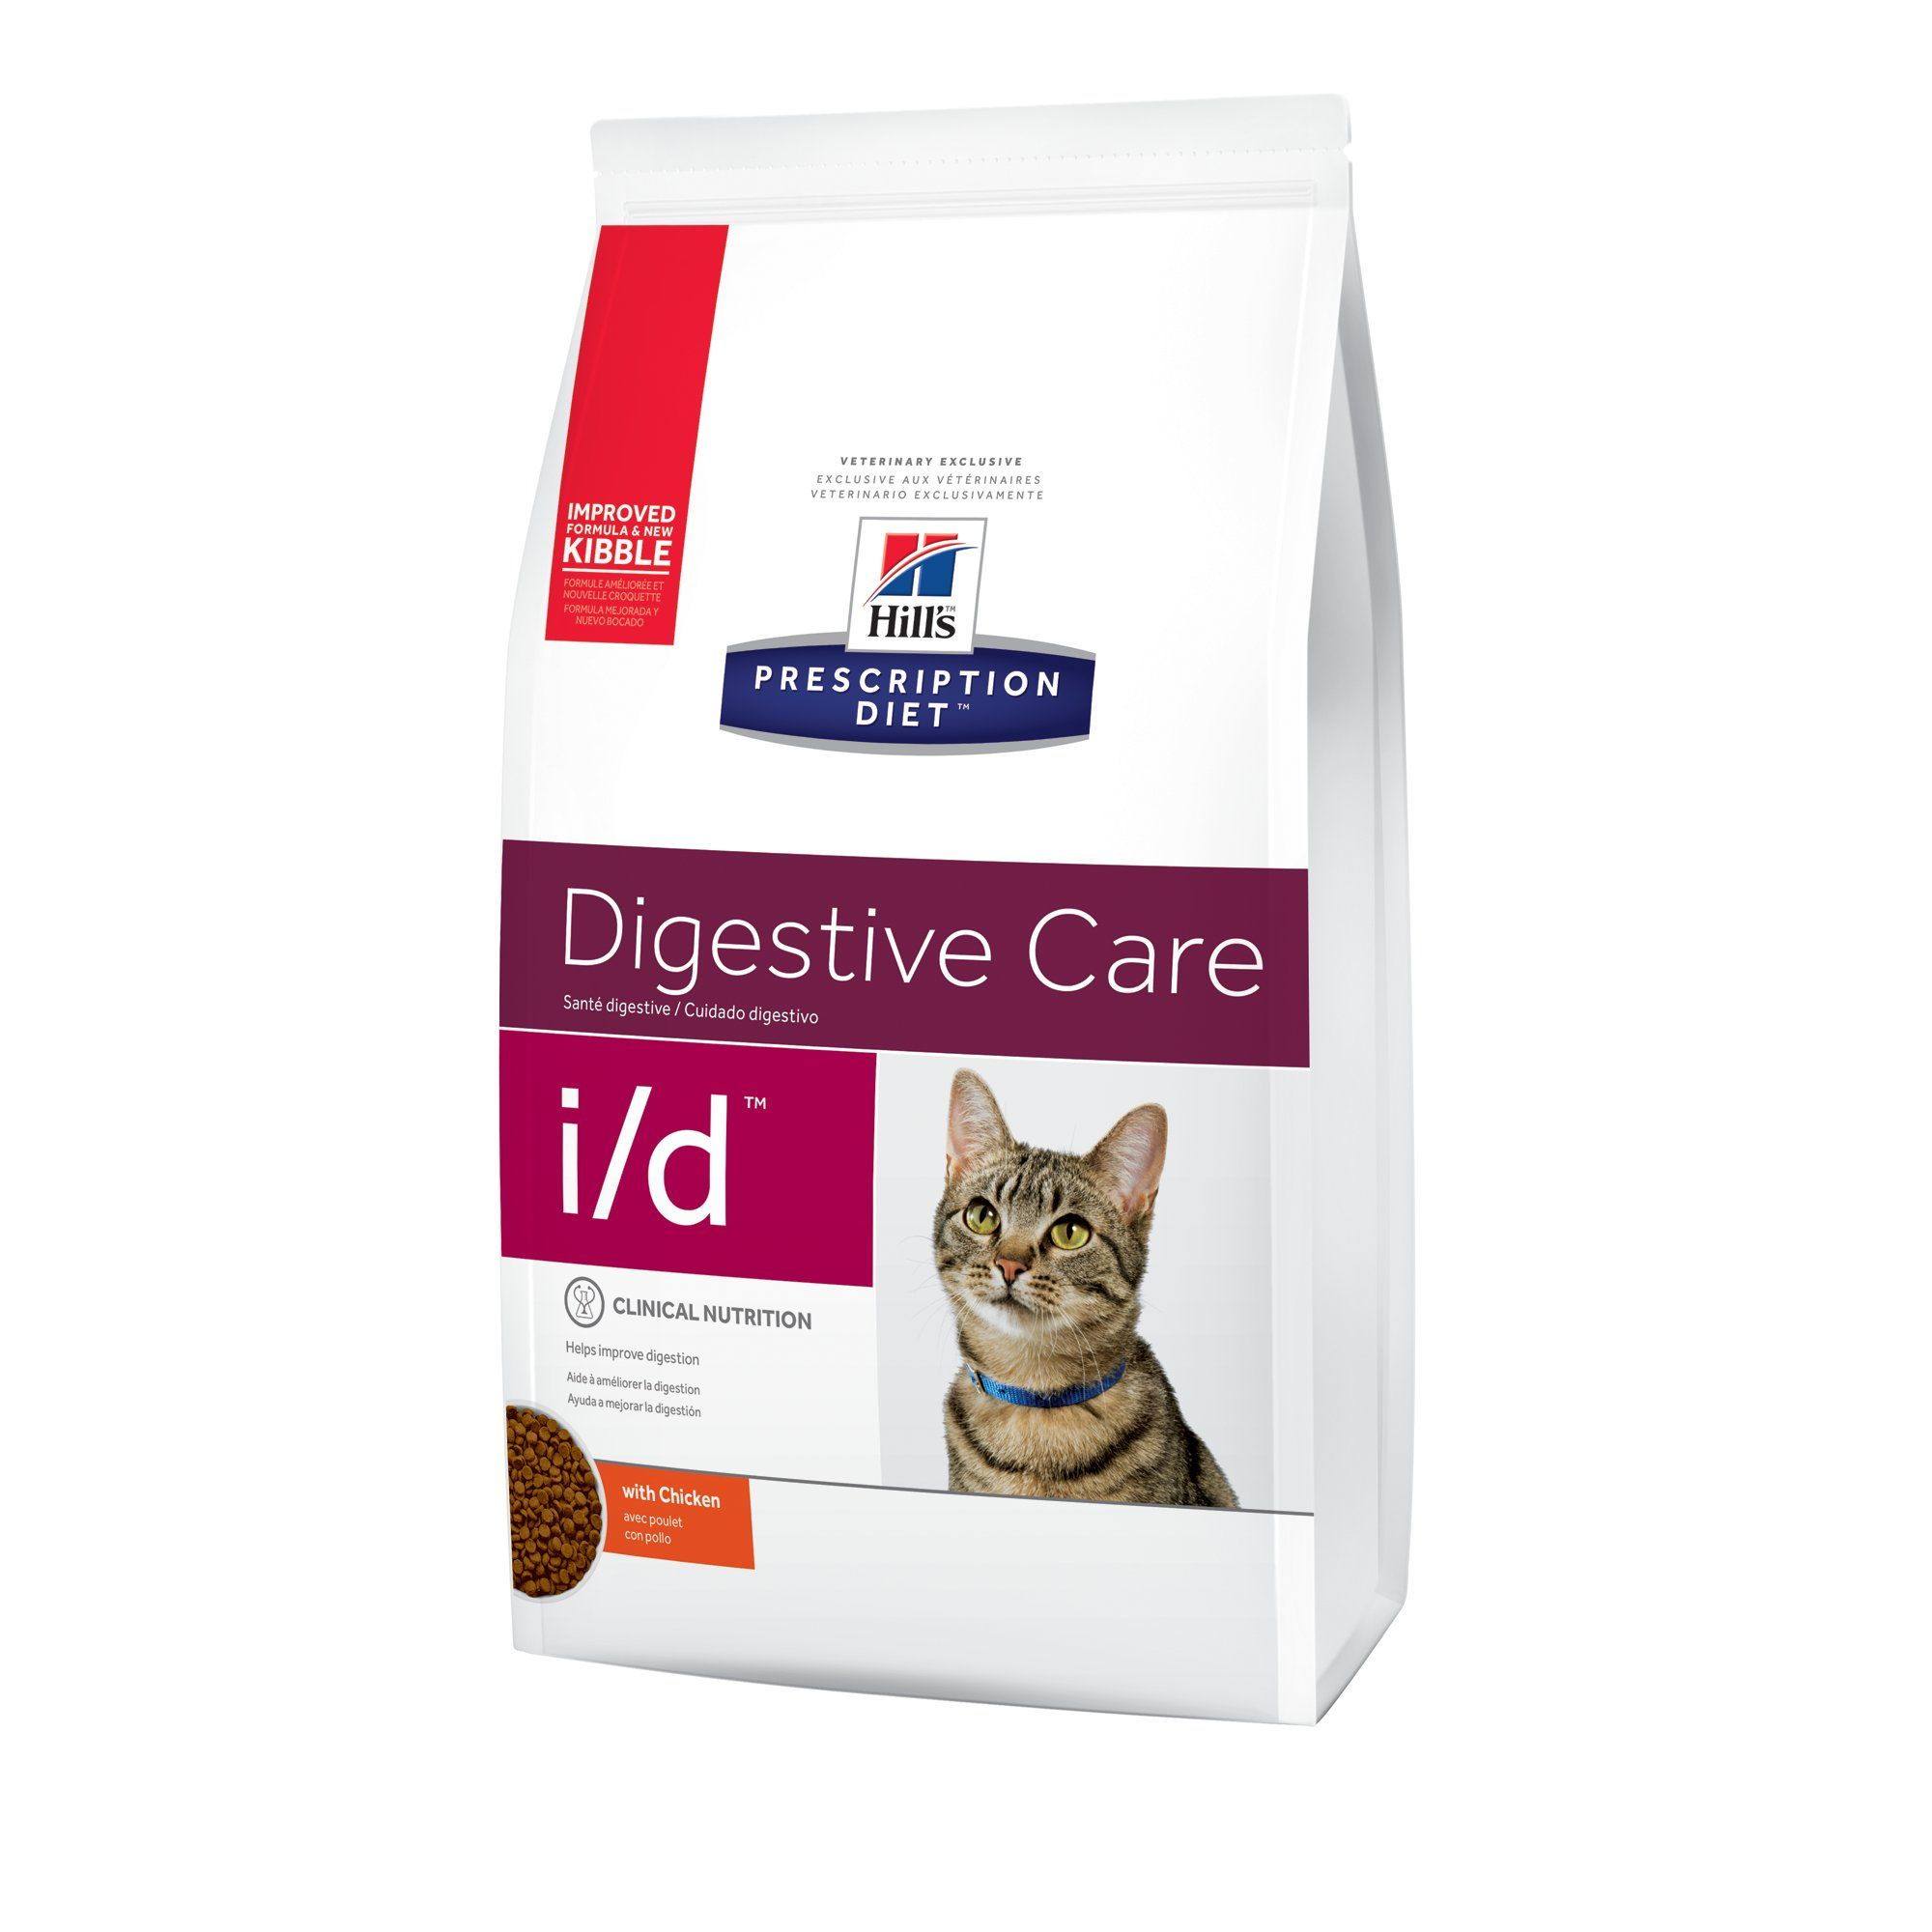 Hill S Prescription Diet I D Digestive Care Chicken Flavor Dry Cat Food 8 5 Lbs Bag Petco In 2021 Dry Cat Food Chicken Flavors Cat Food Reviews